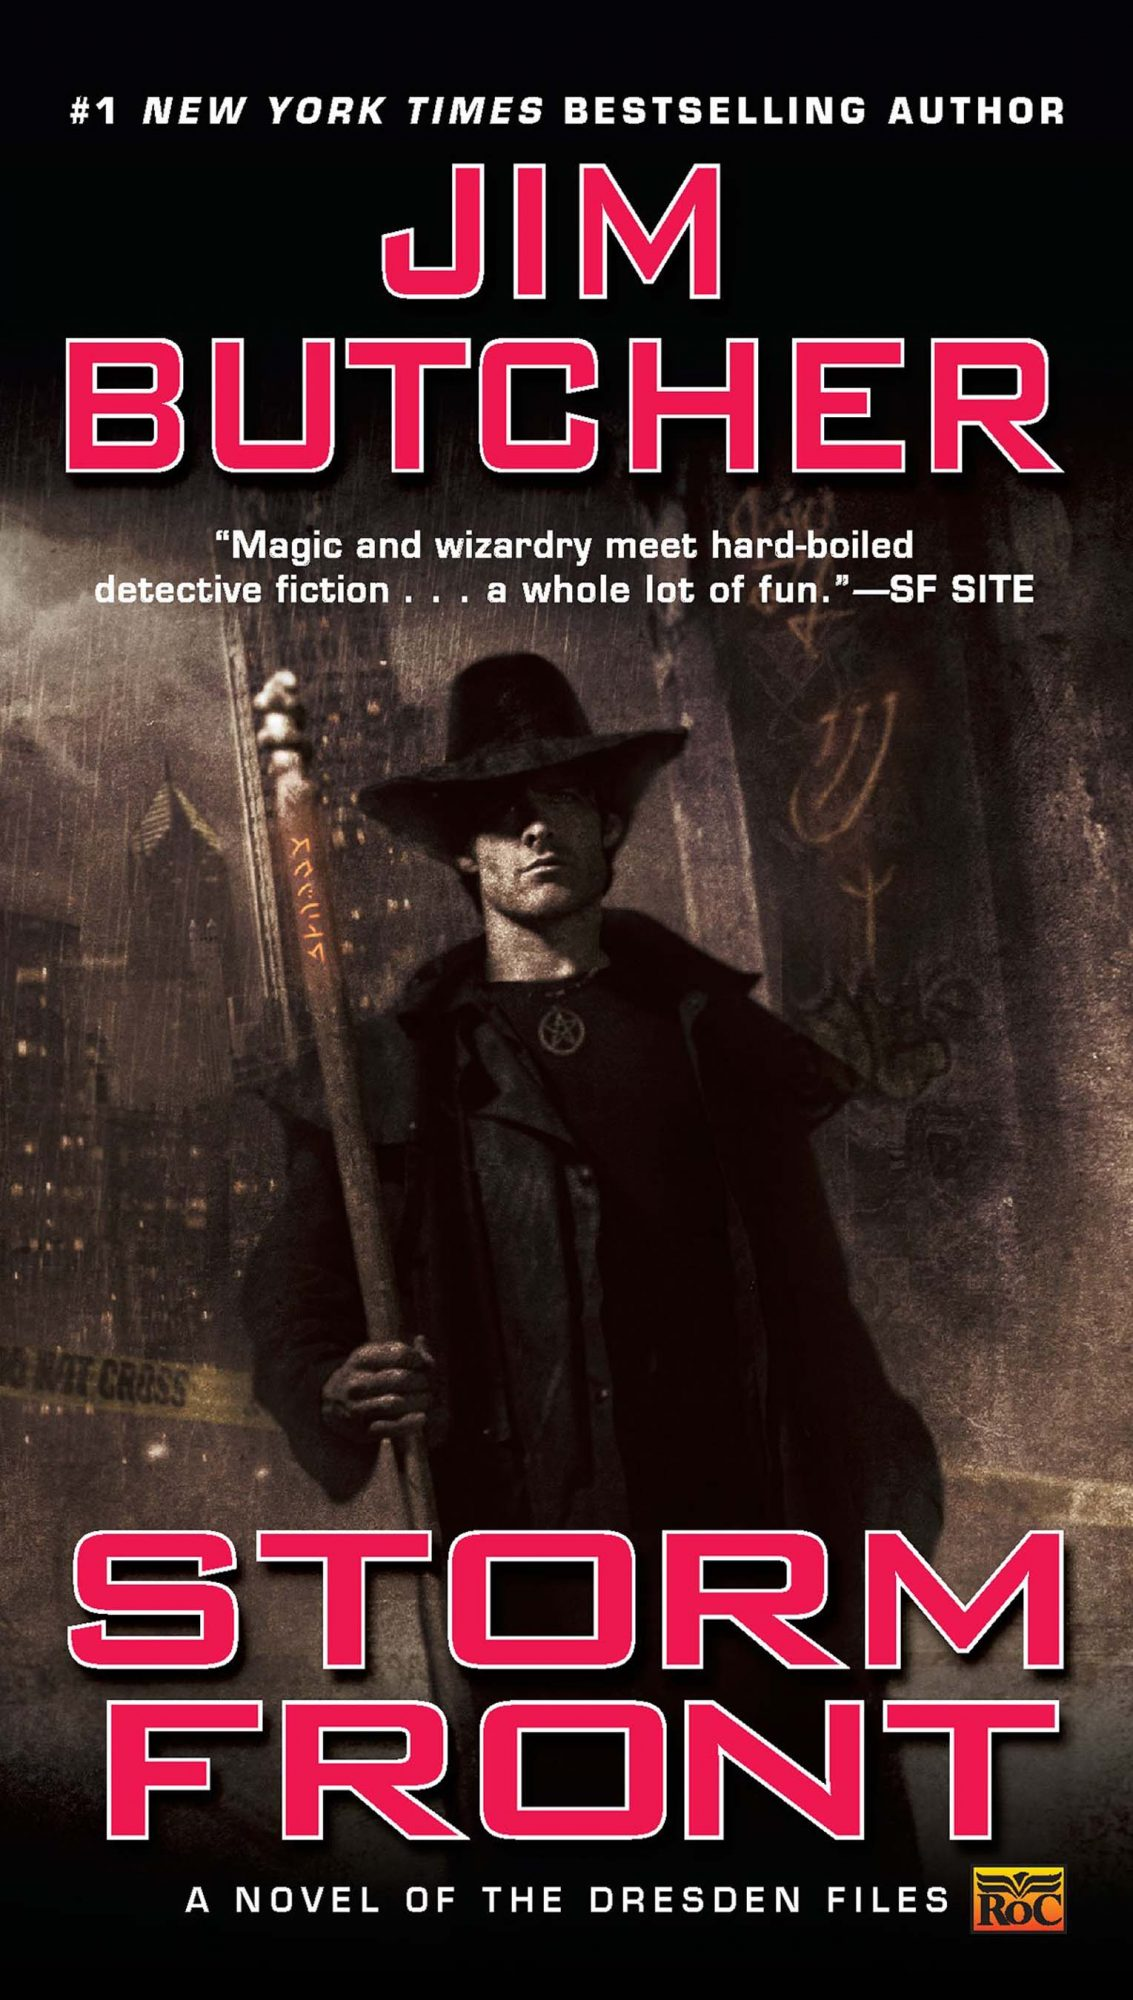 The Dresden Files by Jim Butcher (2000-2015)